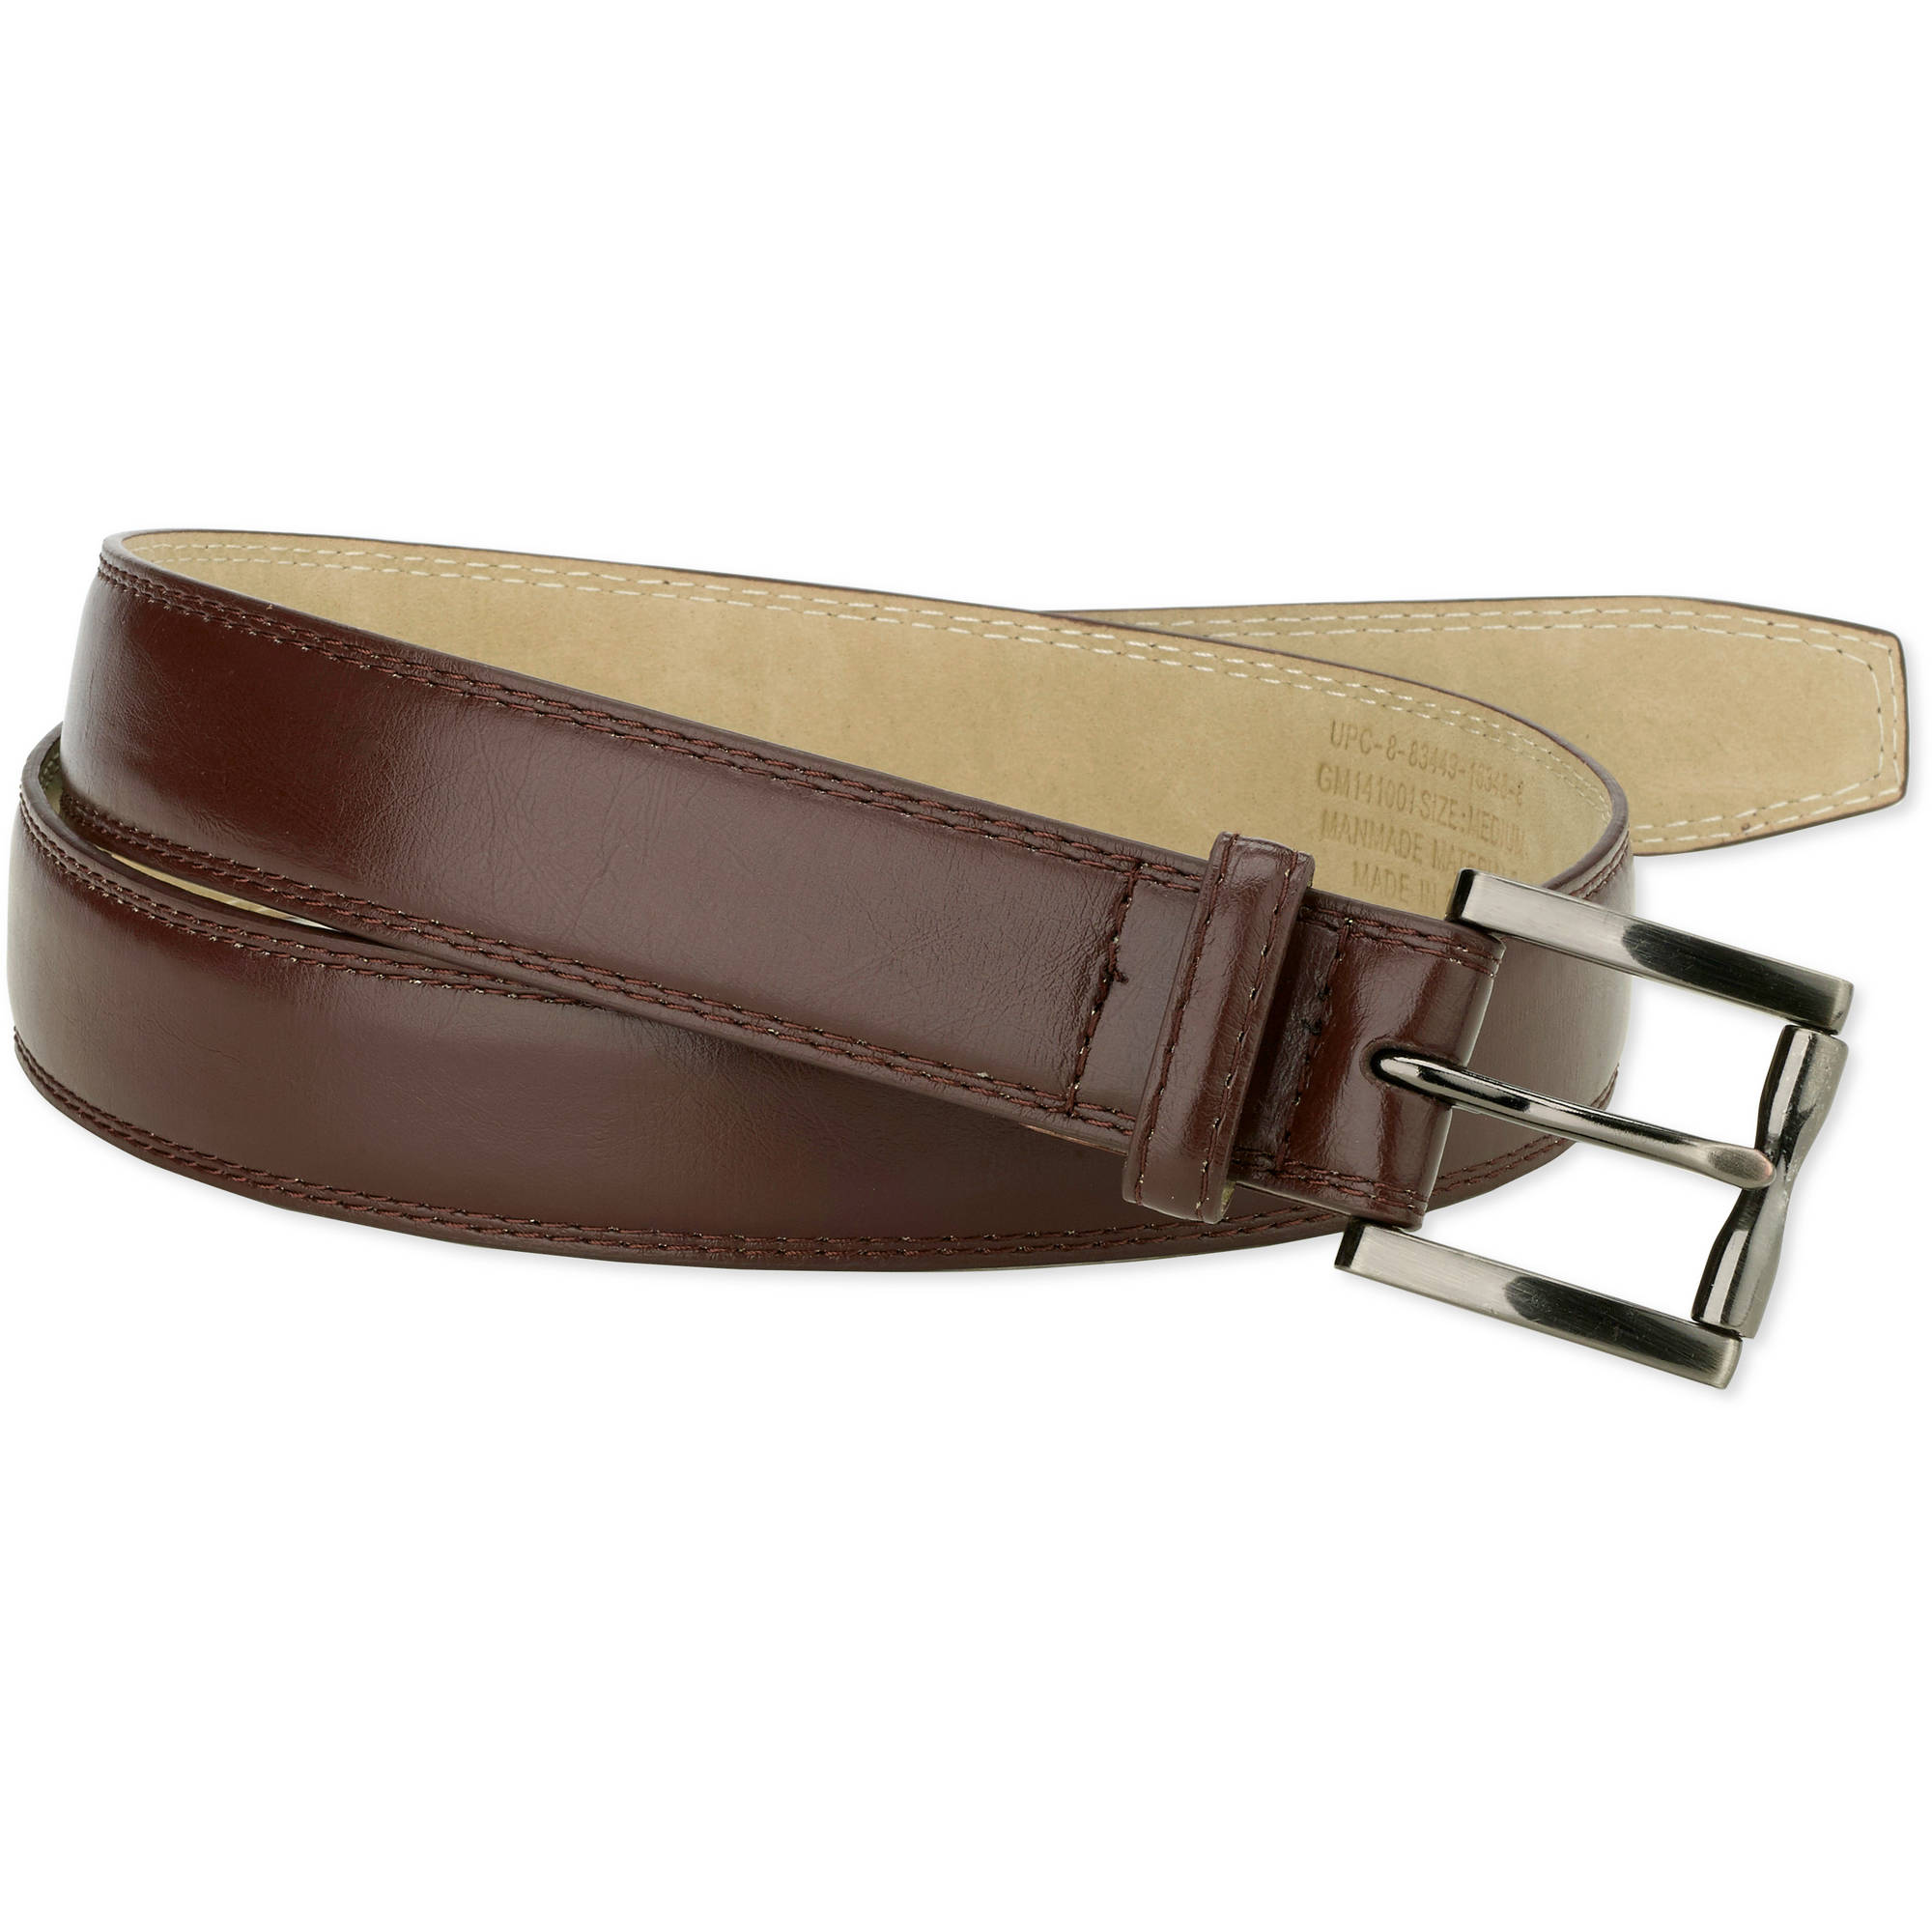 George Men's 32mm Feather Edge Double Stitch Belt